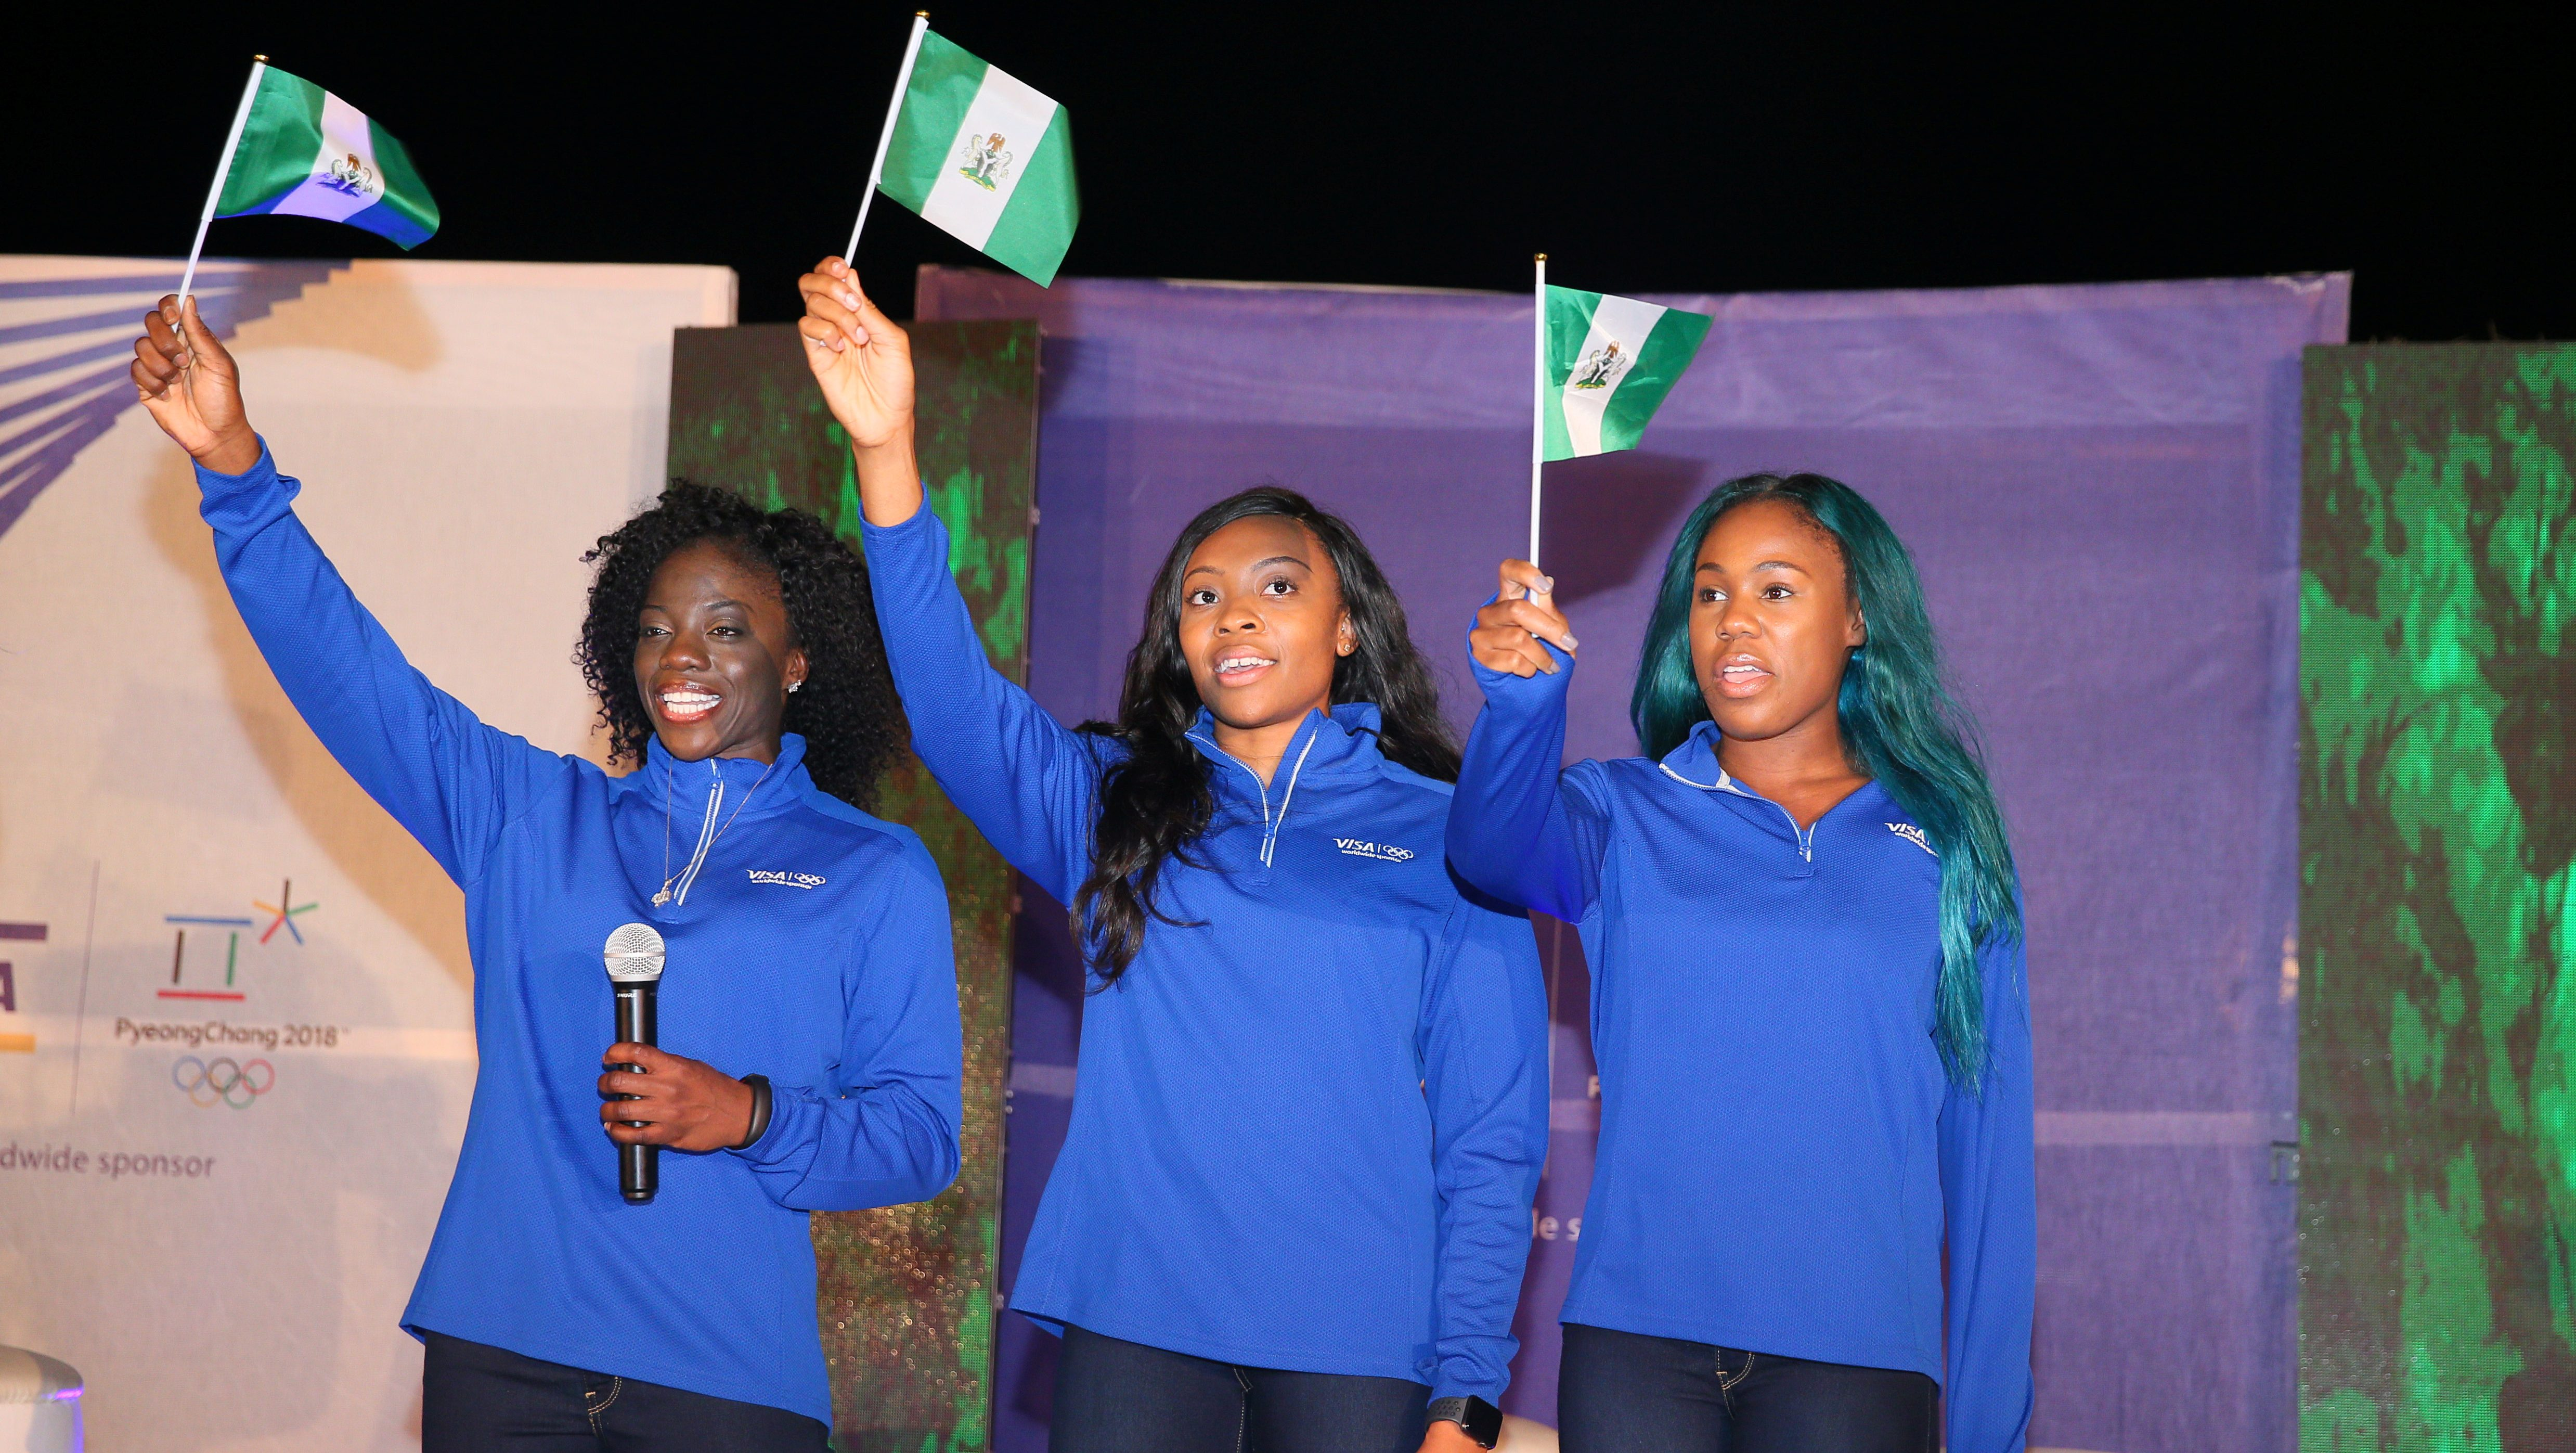 Nigerian women's bobsled team members Seun Adigun, Ngozi Onwumere and Akuoma Omeoga wave Nigeria flags during a reception organised for them in Lagos, Nigeria, as part of preparations ahead of the 2018 Pyeongchang Winter Olympic Games, February 2, 2018.